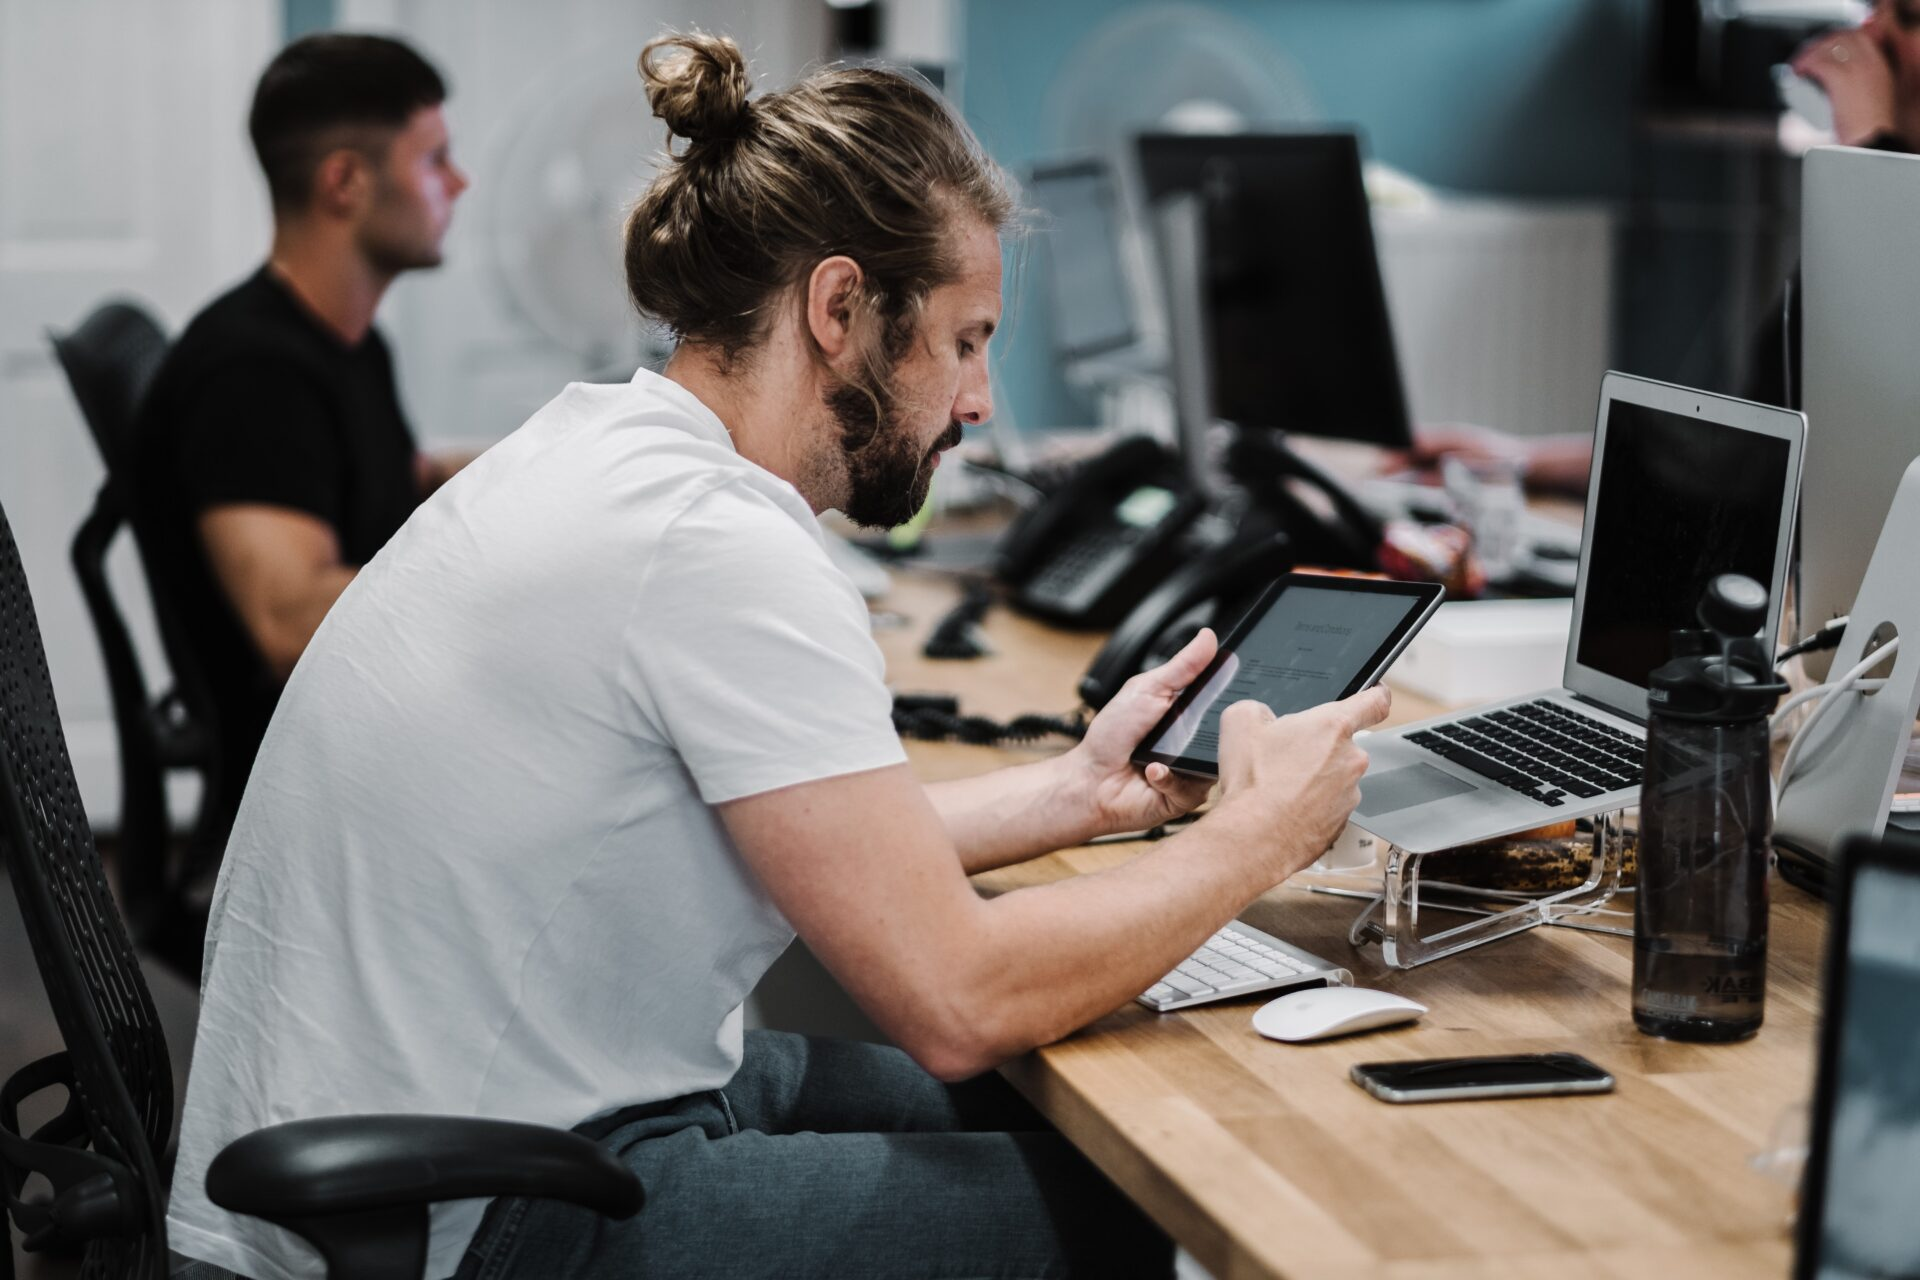 Man in a white shirt and jeans with a man bun, sitting at a computer looking stressed